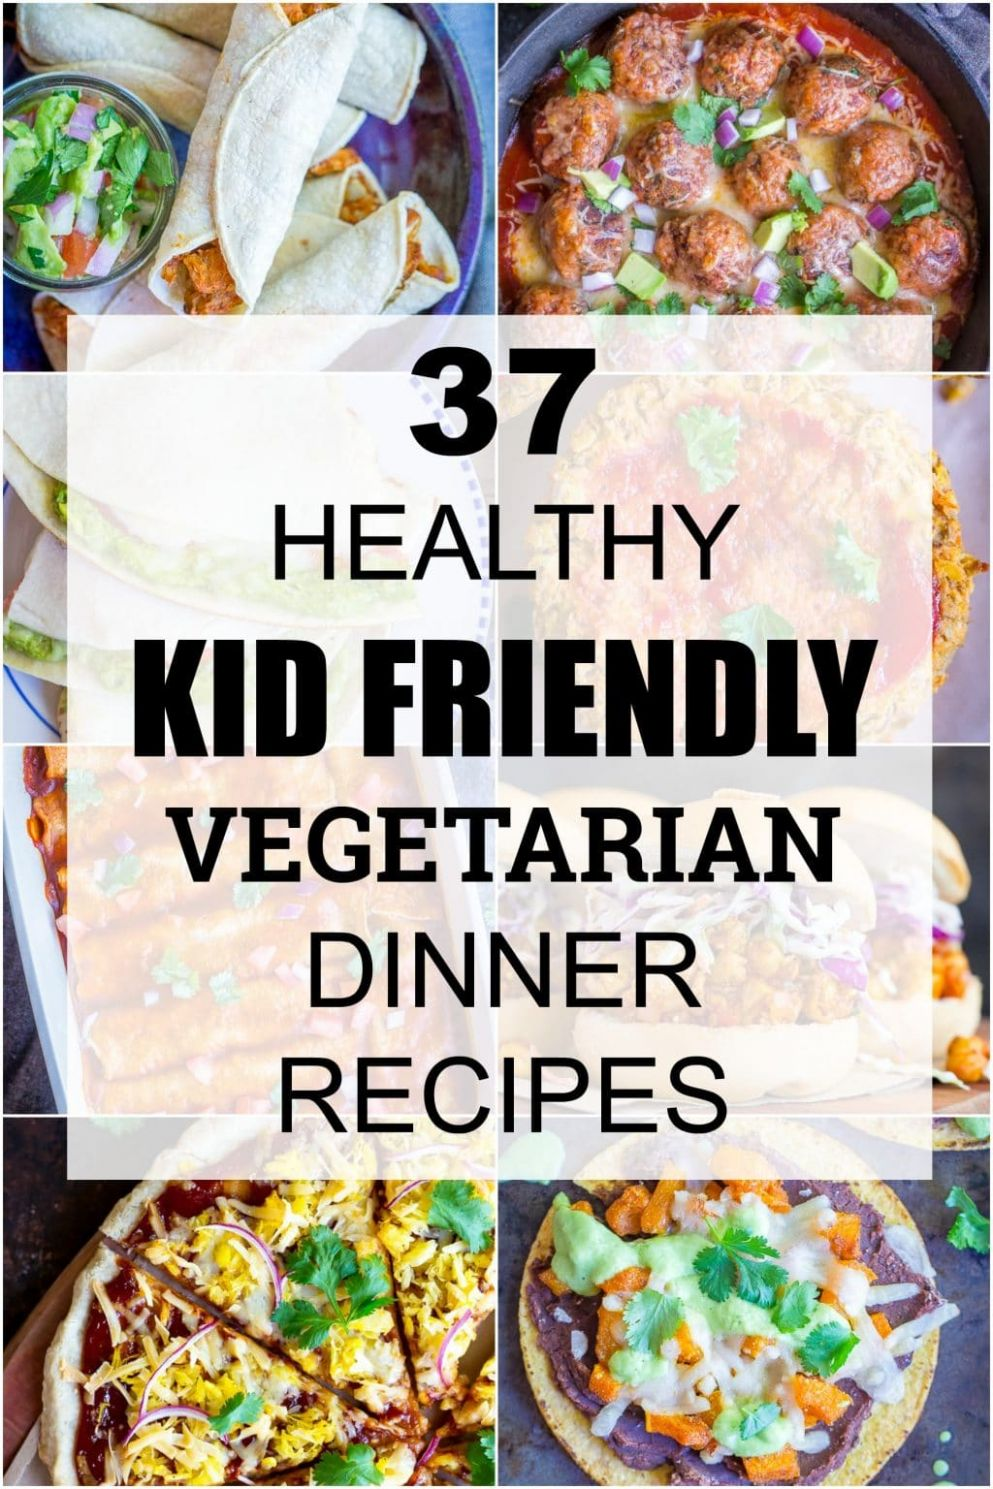 9 Healthy Kid Friendly Vegetarian Dinner Recipes - She Likes Food